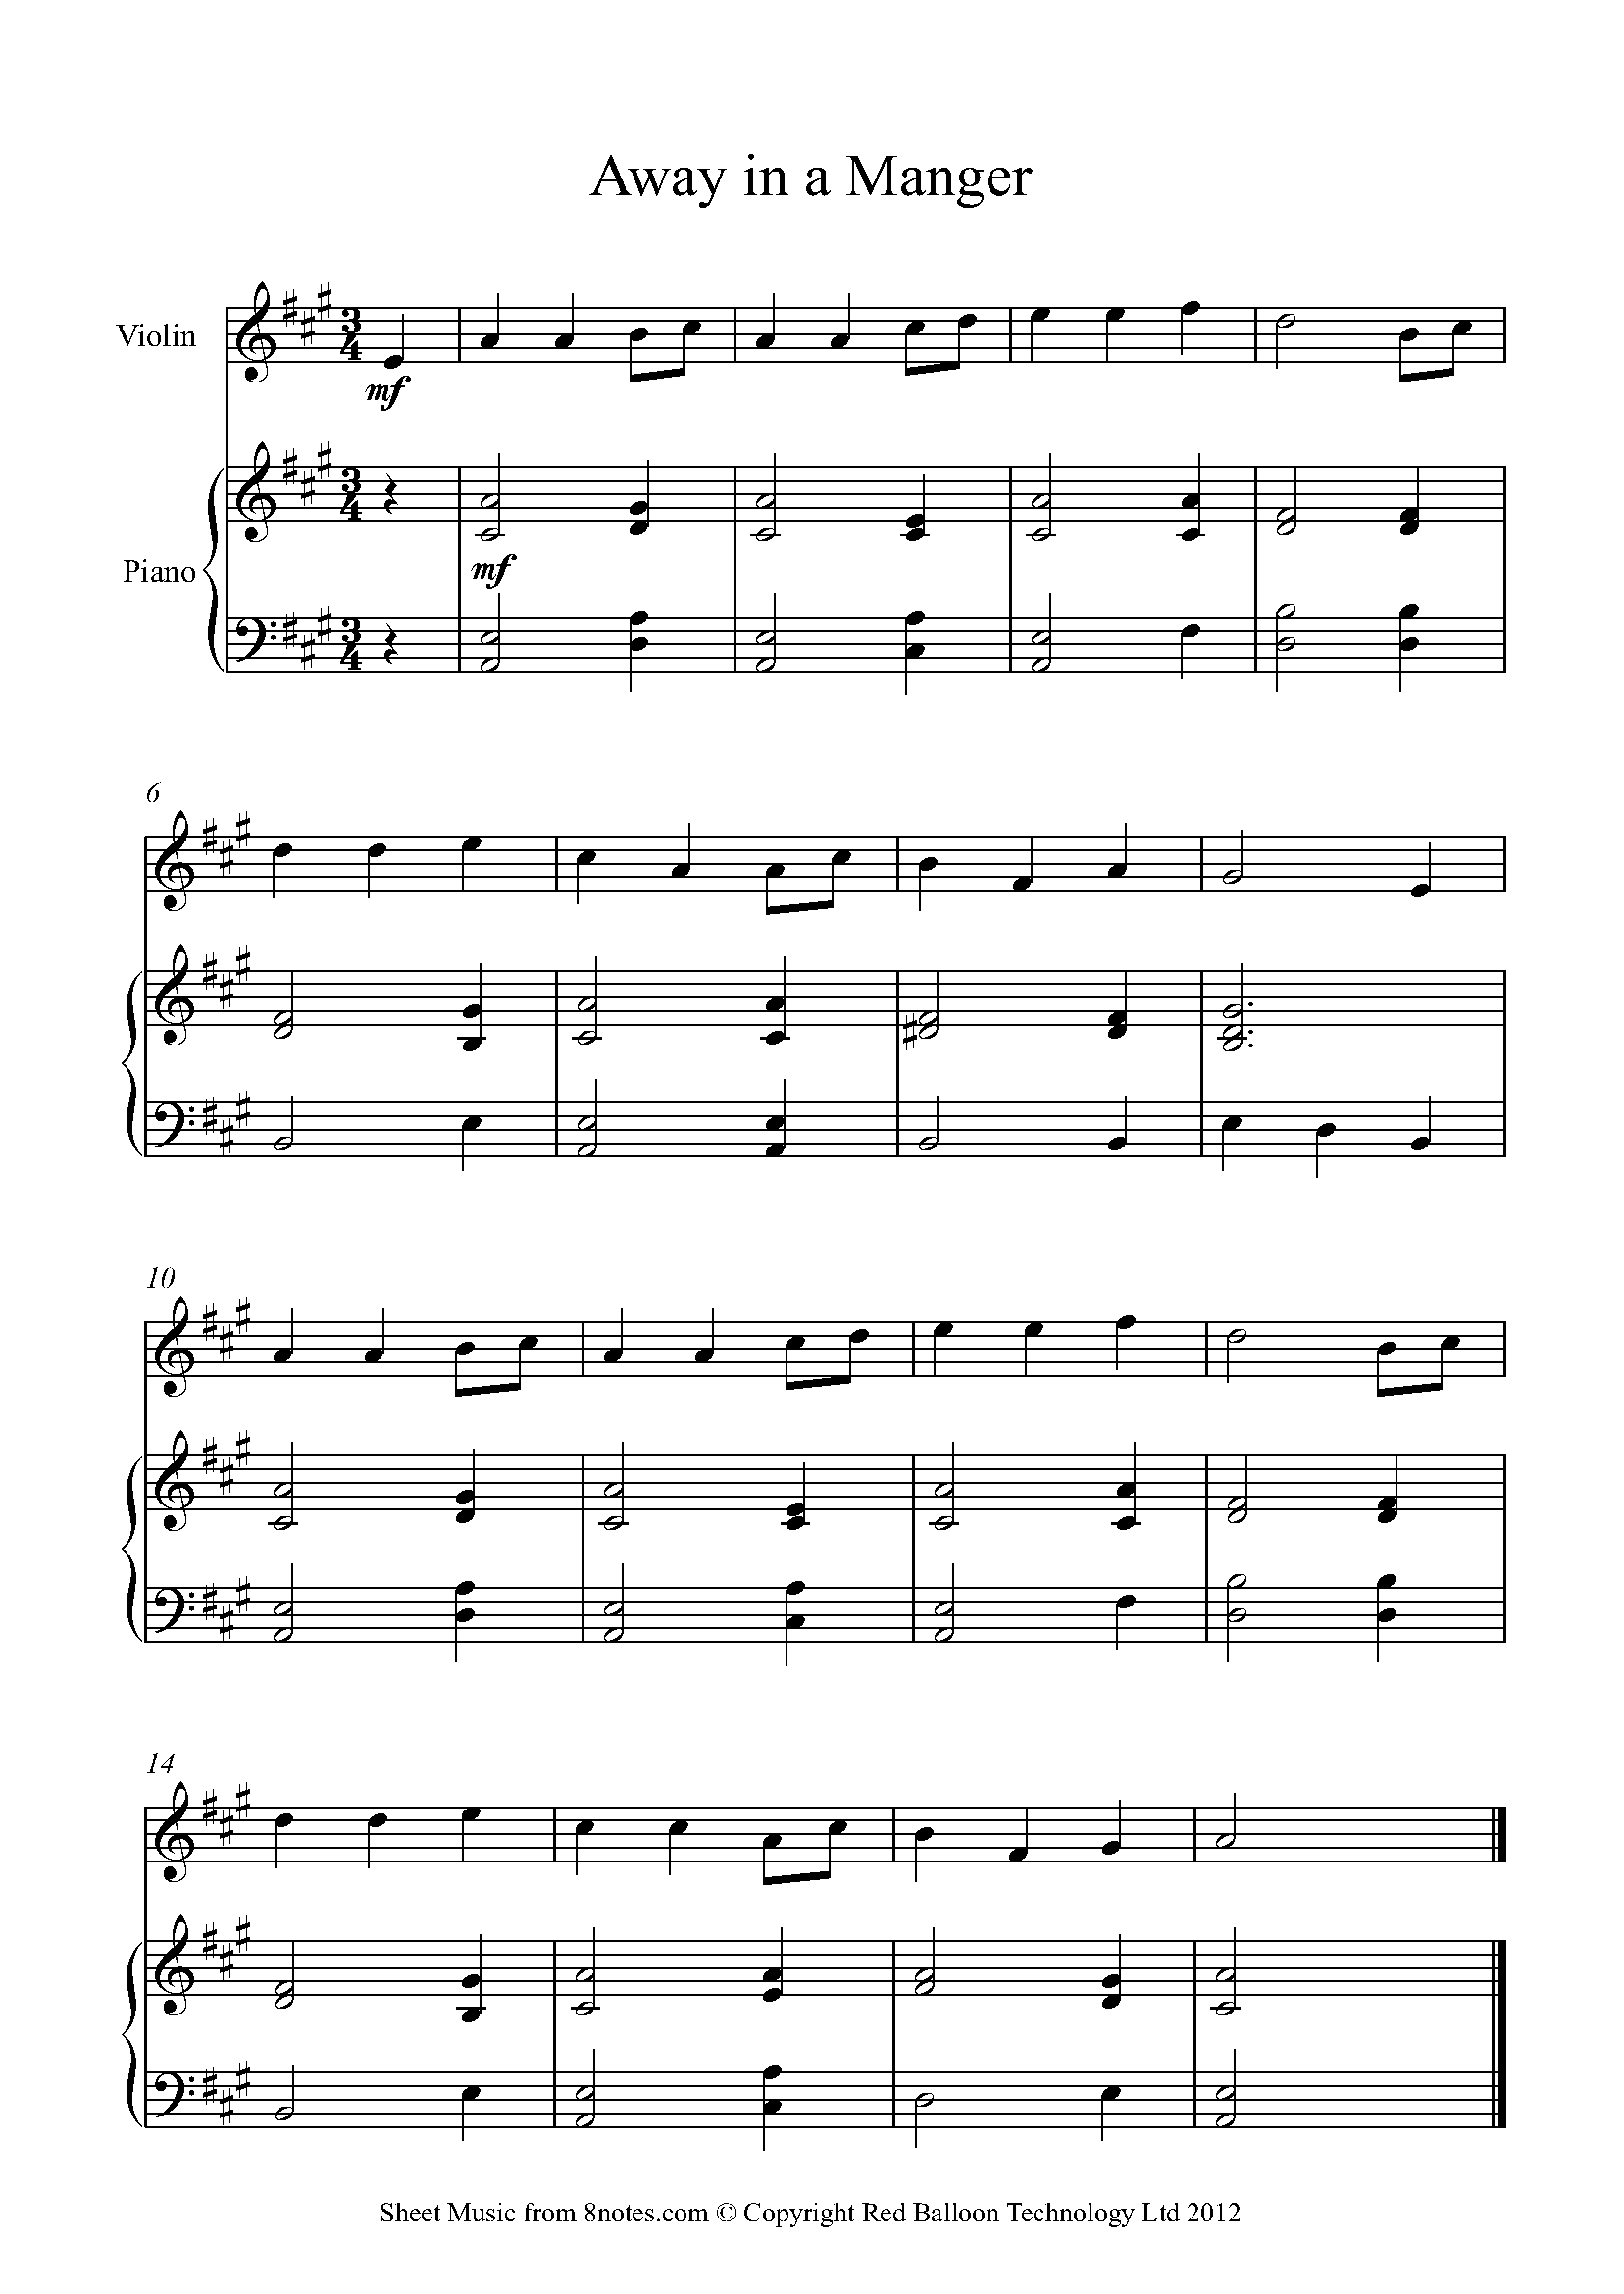 away in a manger sheet music for violin - 8notes.com  8notes